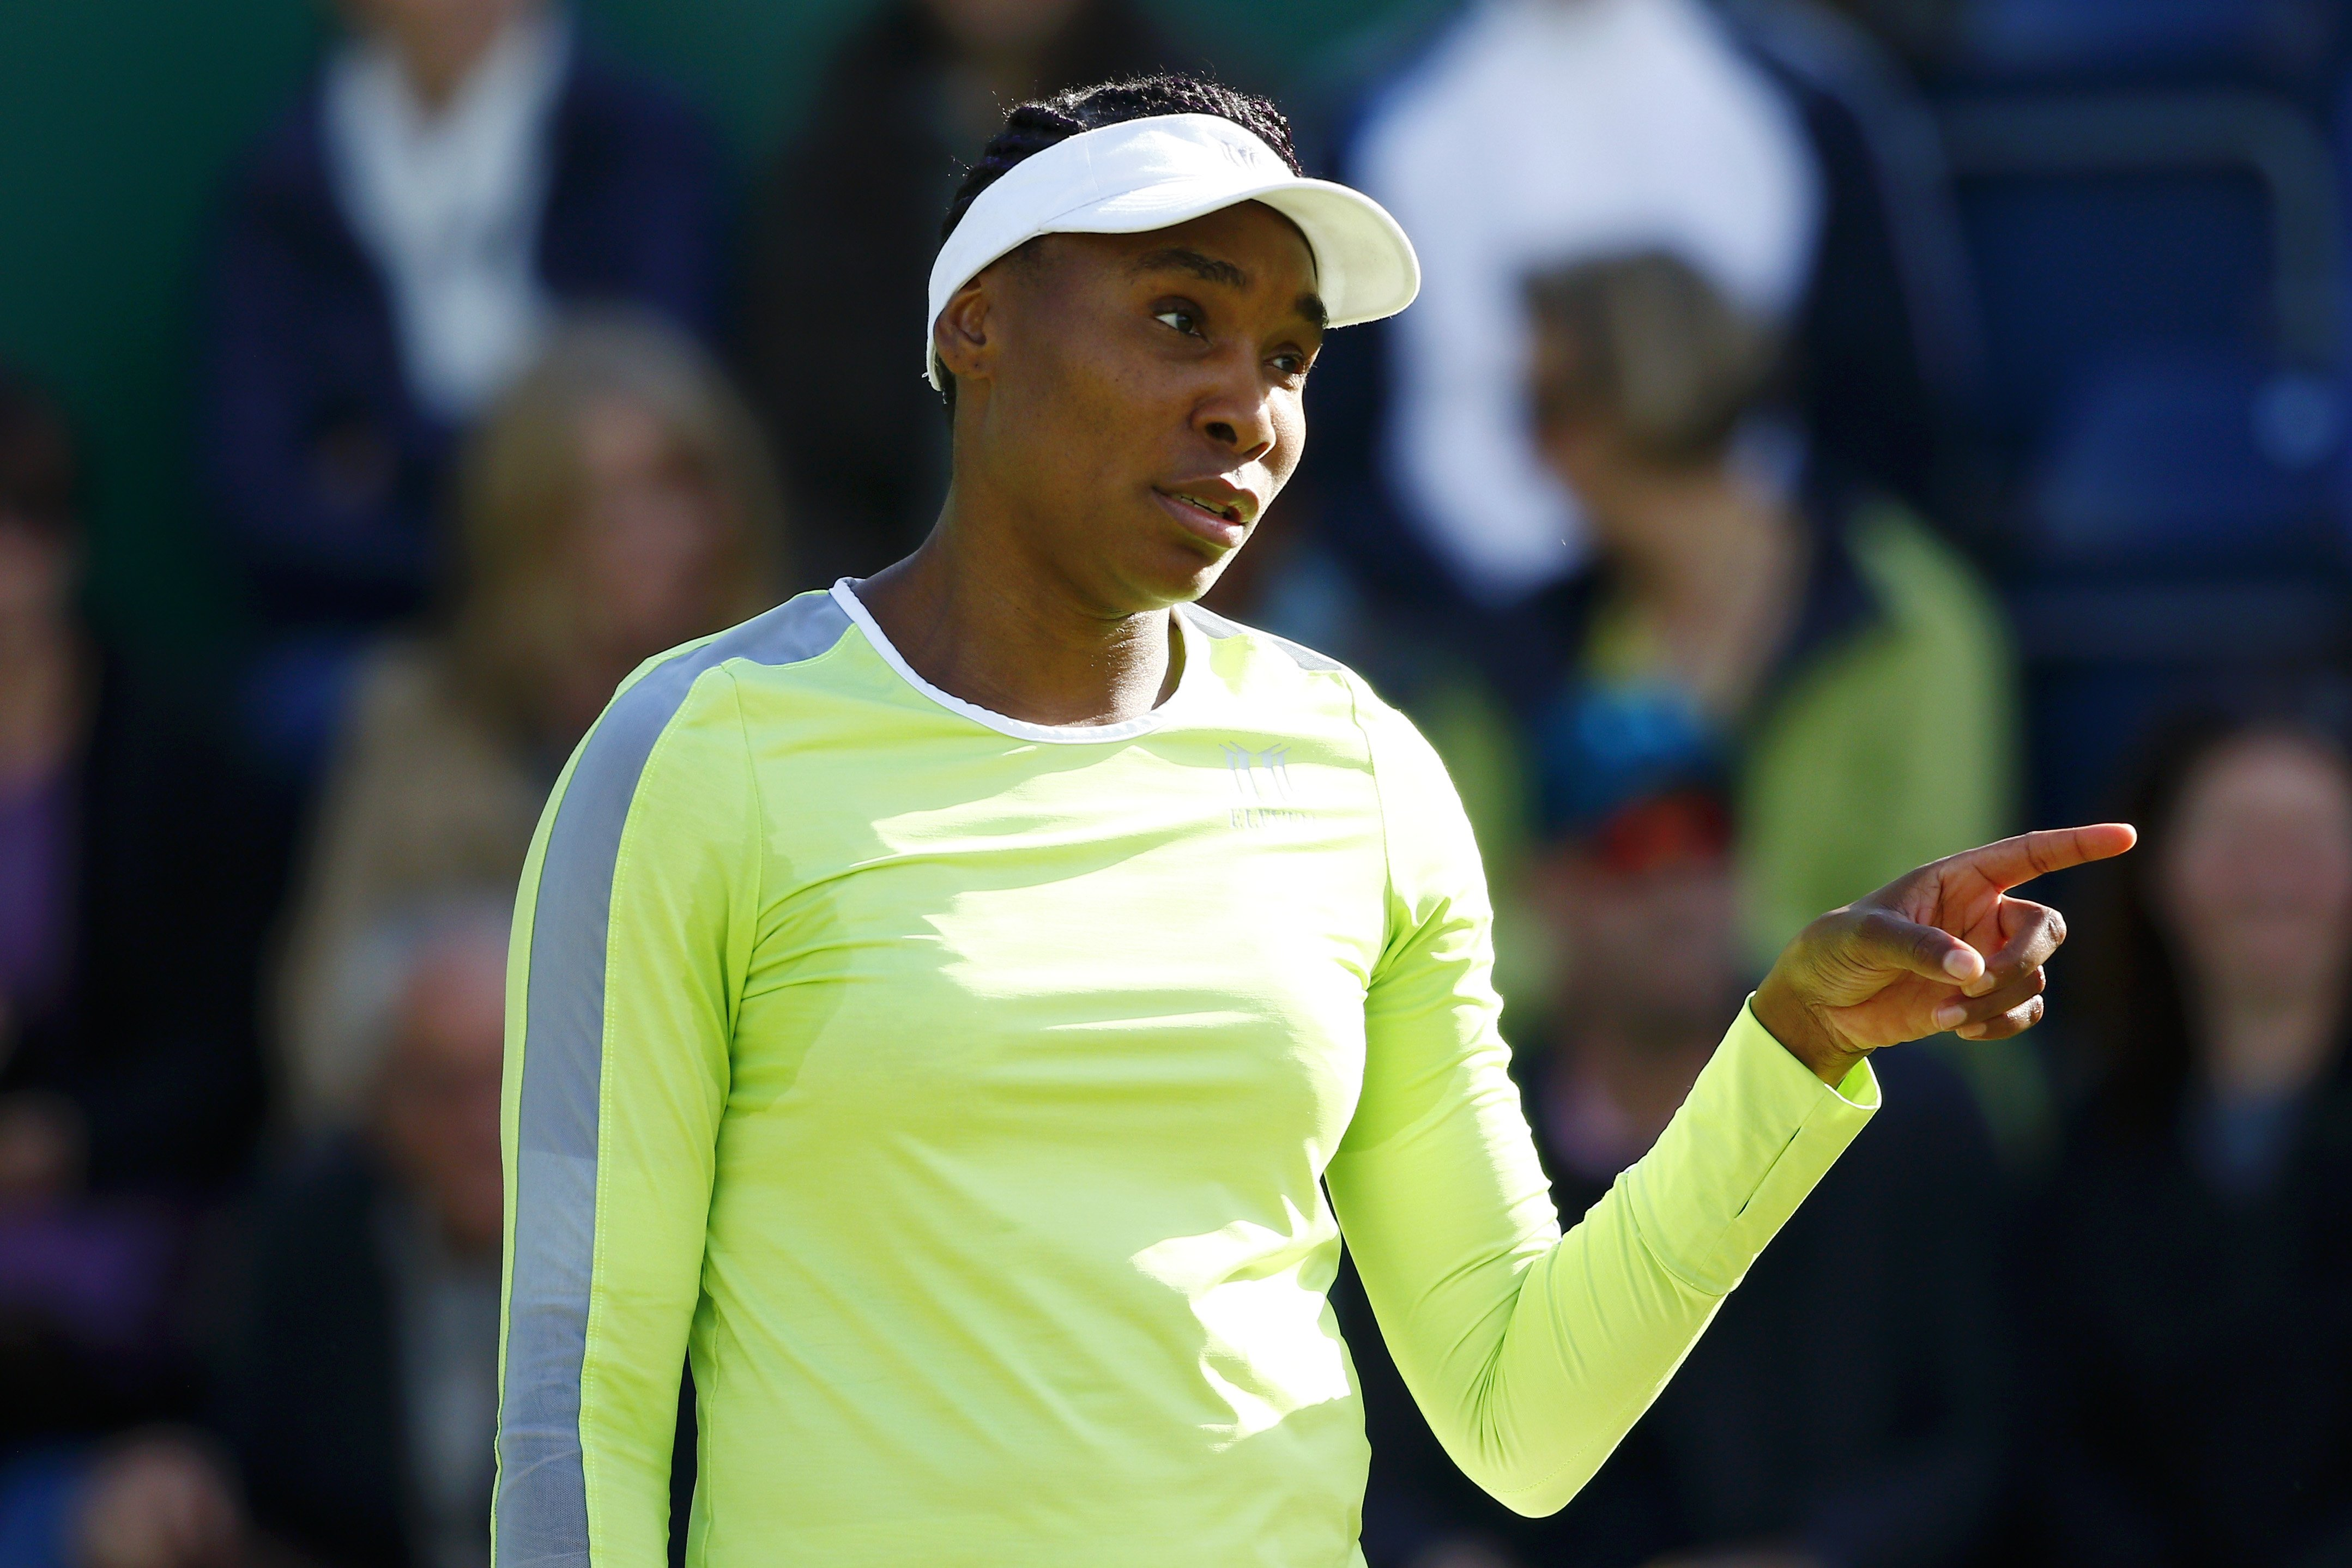 Venus Williams at the Nature Valley Classic at Edgbaston Priory Club on June 20, 2019 in Birmingham, United Kingdom  | Photo: Getty Images